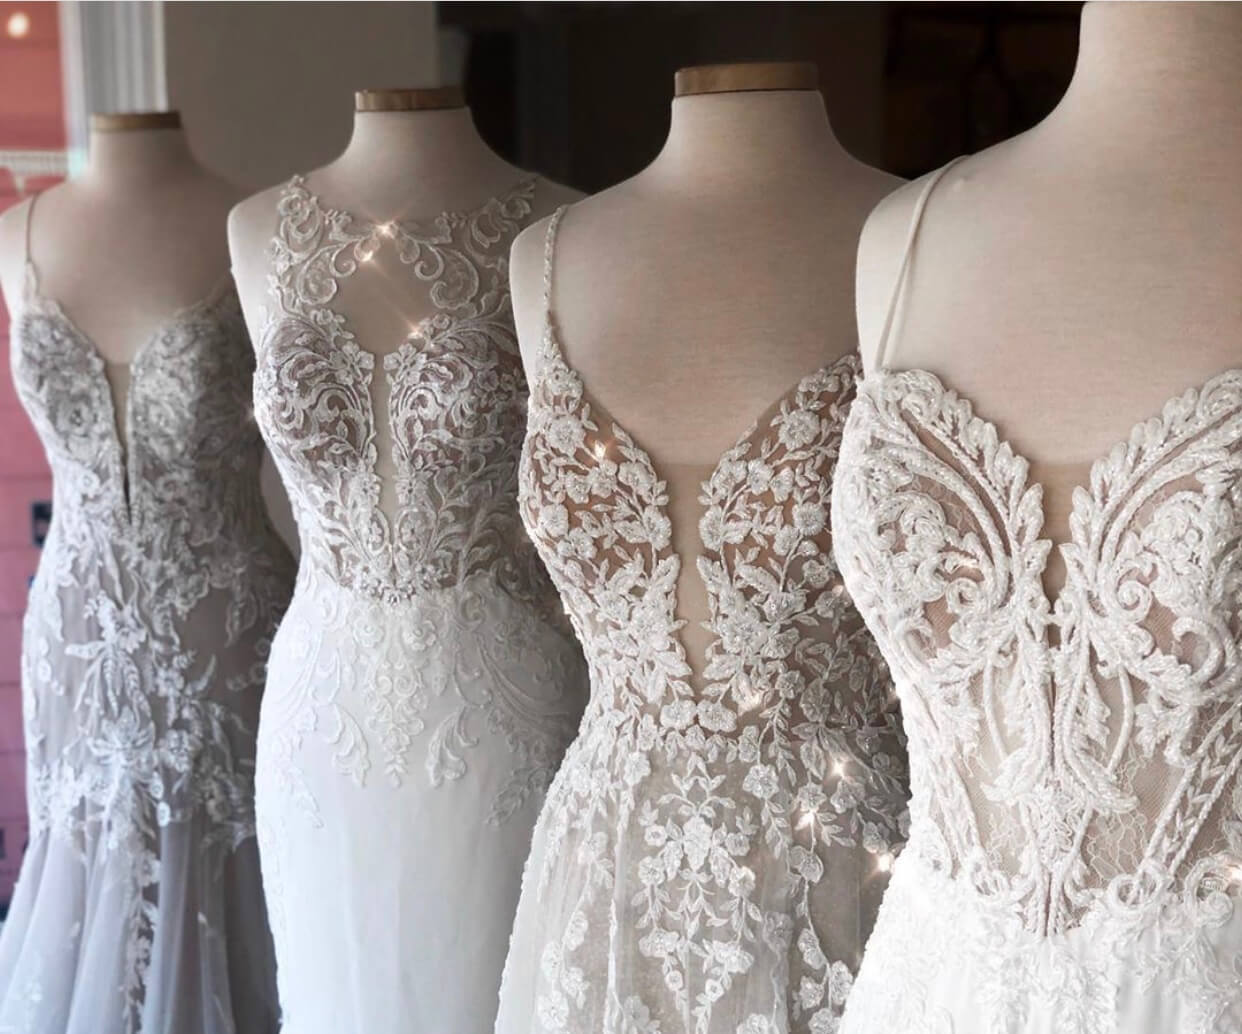 All About Wedding Dress Silhouettes: Part II